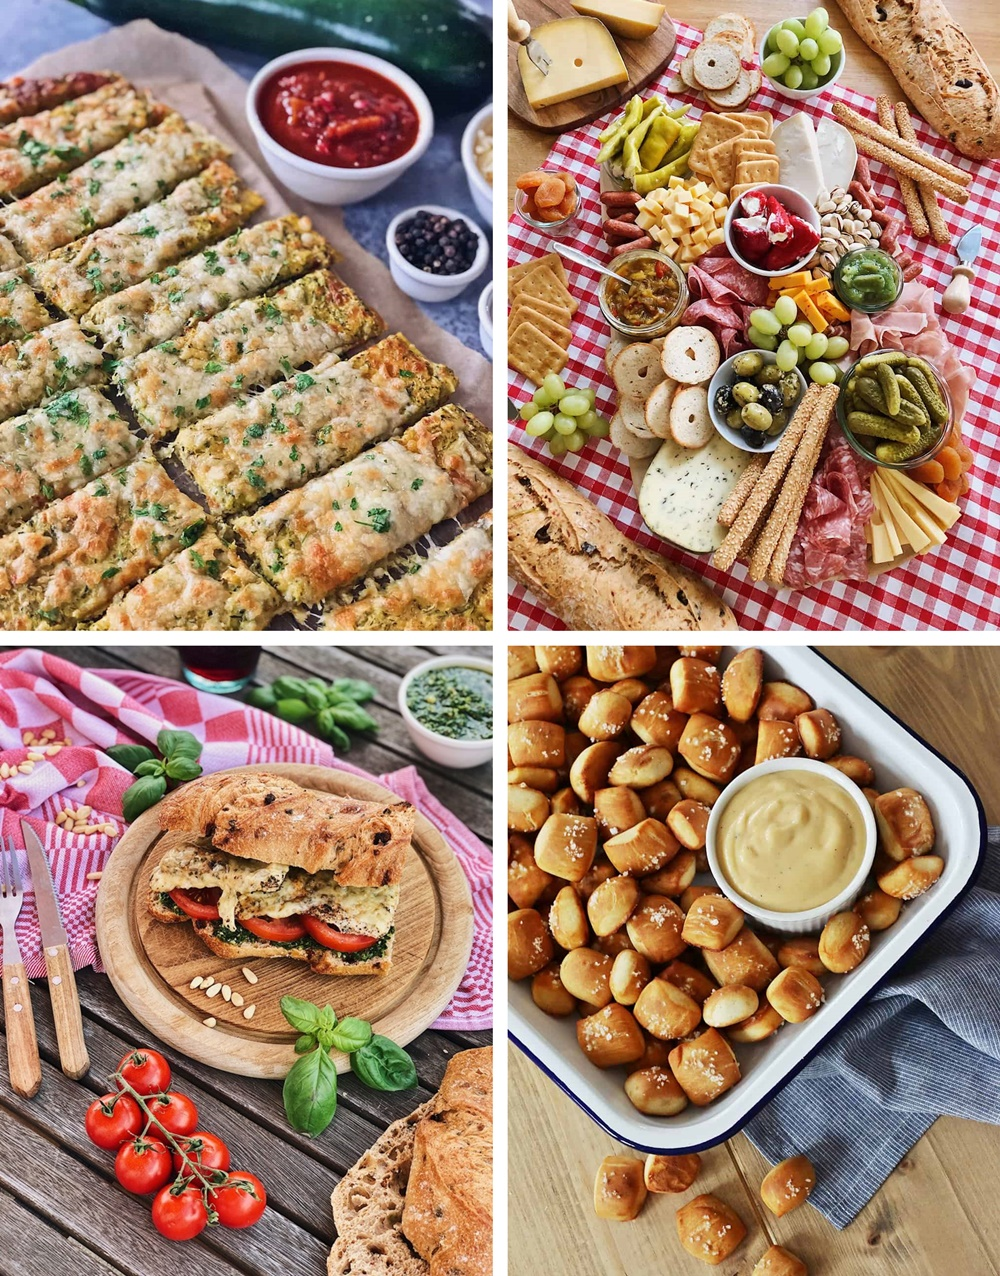 Die besten Brote, Salate, Snacks & Drinks für die Grillsaison sandwich pretzel bites bread sticks charcuterie board